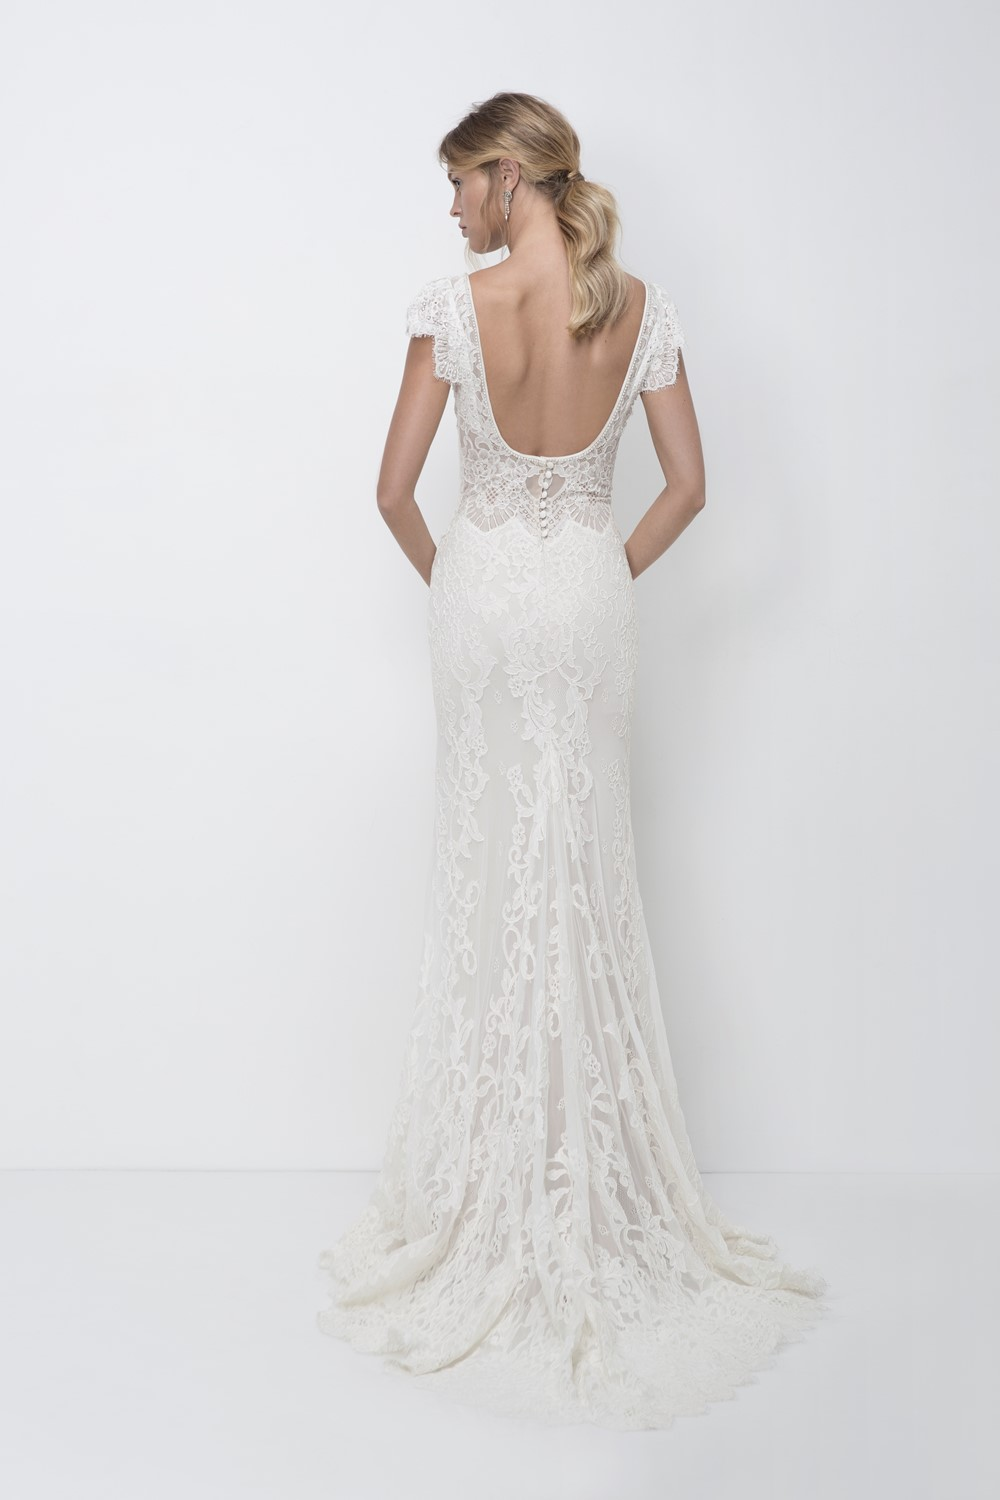 Luna Wedding Dress from Lihi Hod's 2018 Bridal Collection